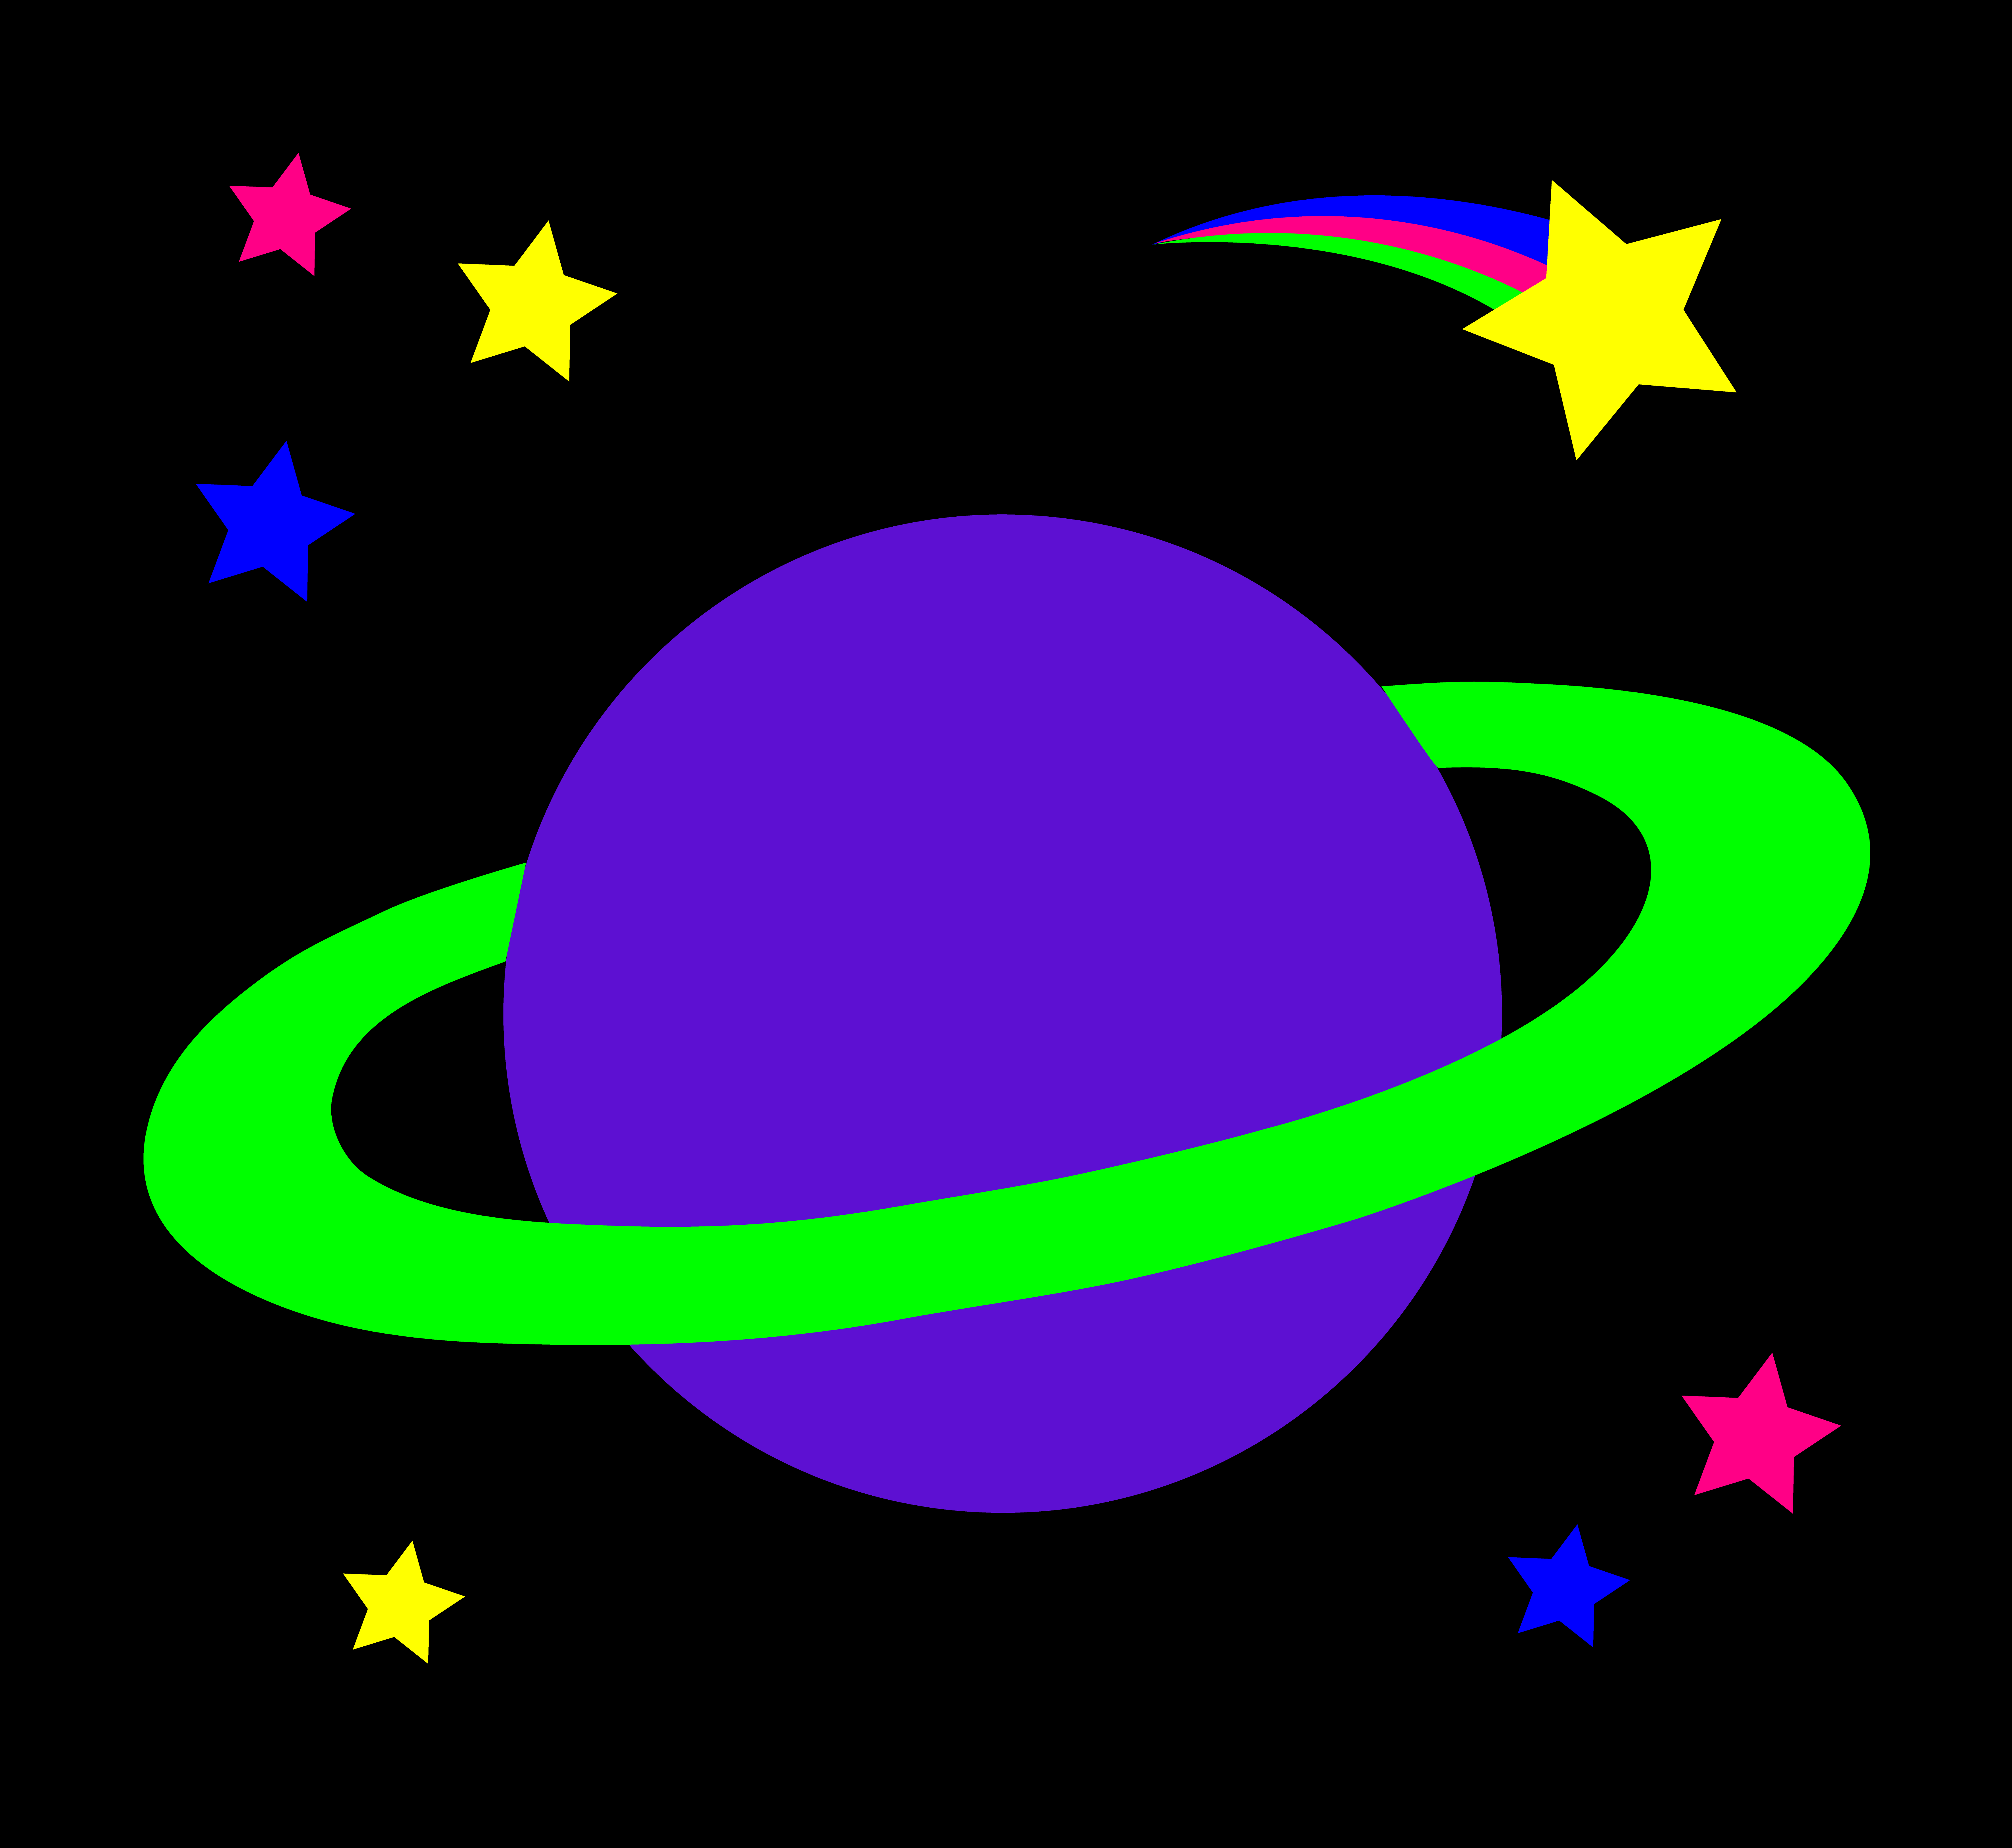 Shooting Star clipart outer space Colorful Planet Stars Planet Ringed